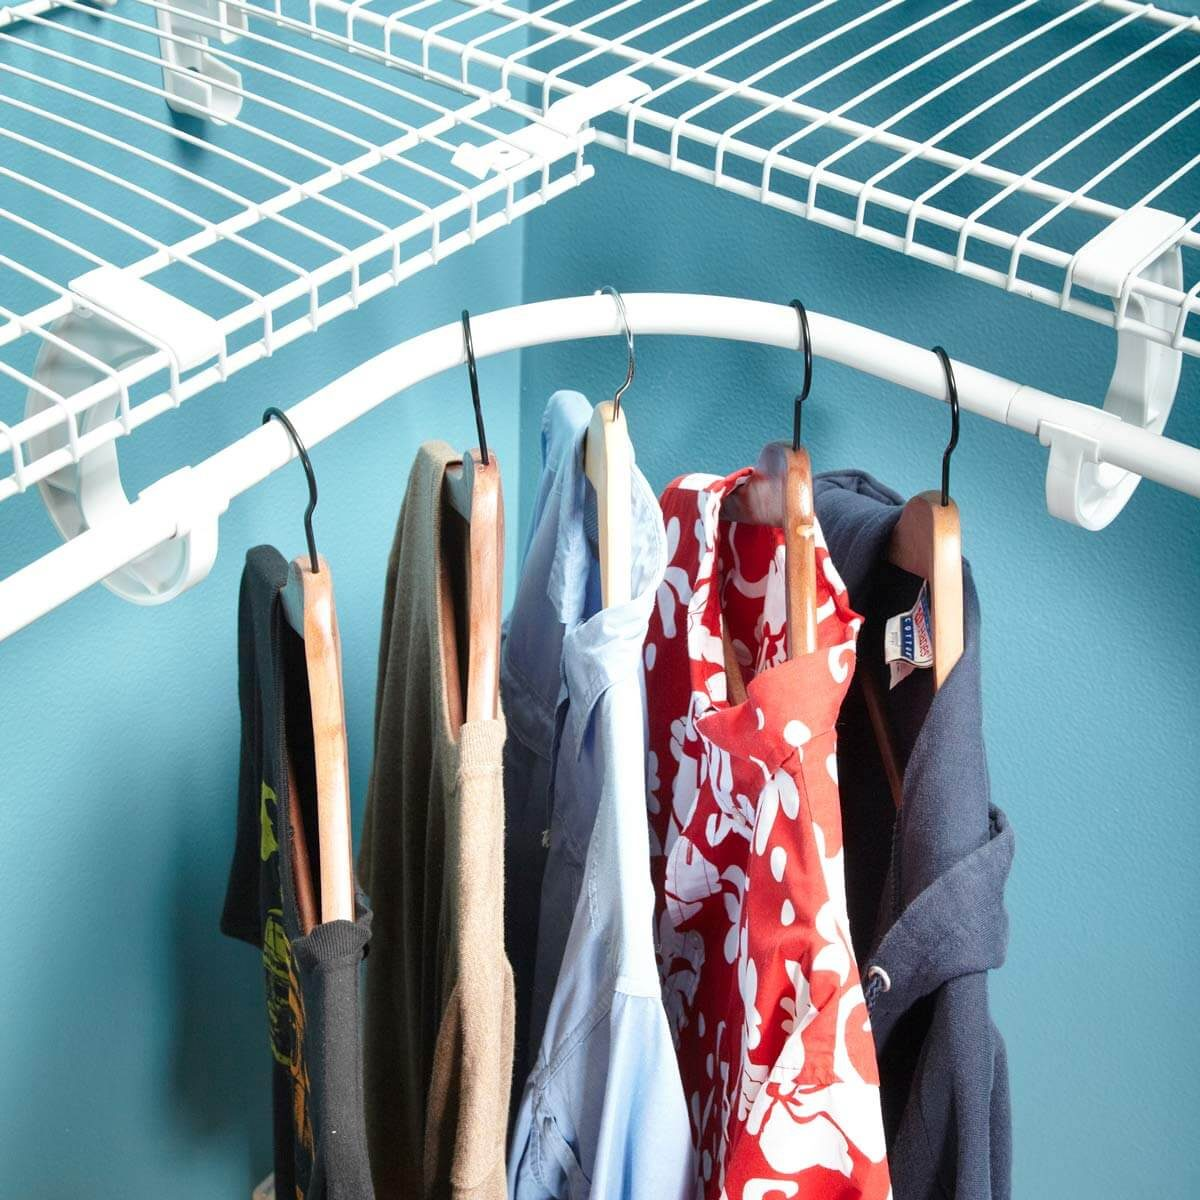 30 Closet Designs Made to Clean the Clutter — The Family Handyman